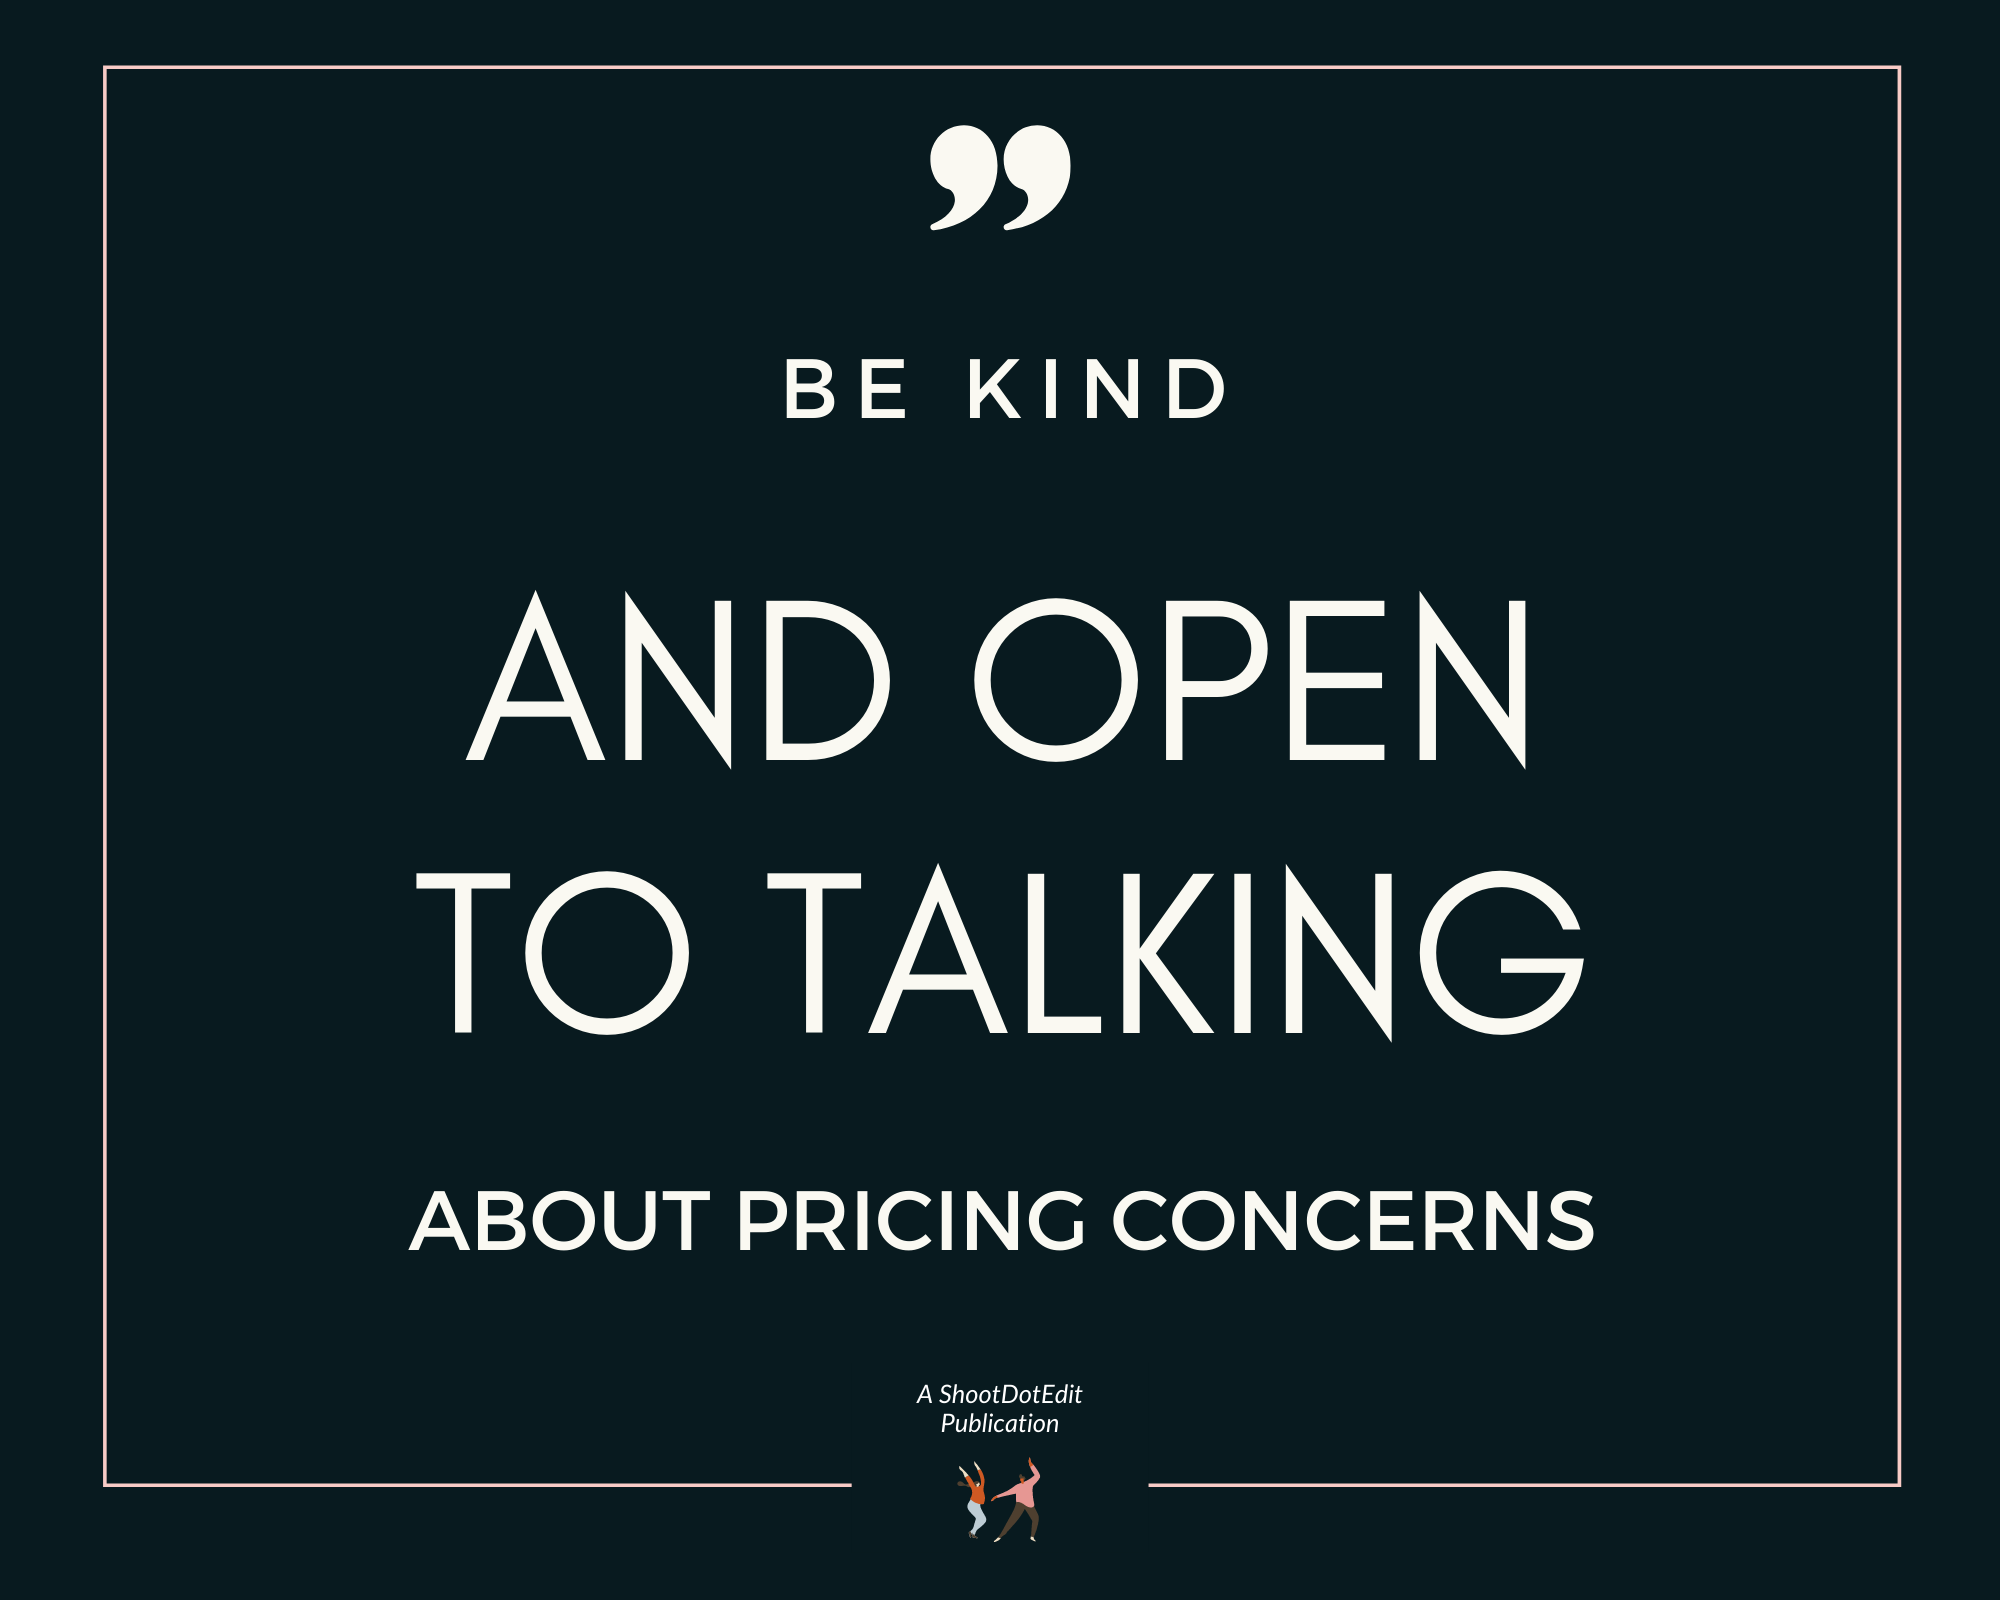 Infographic stating be kind and open to talking about pricing concerns